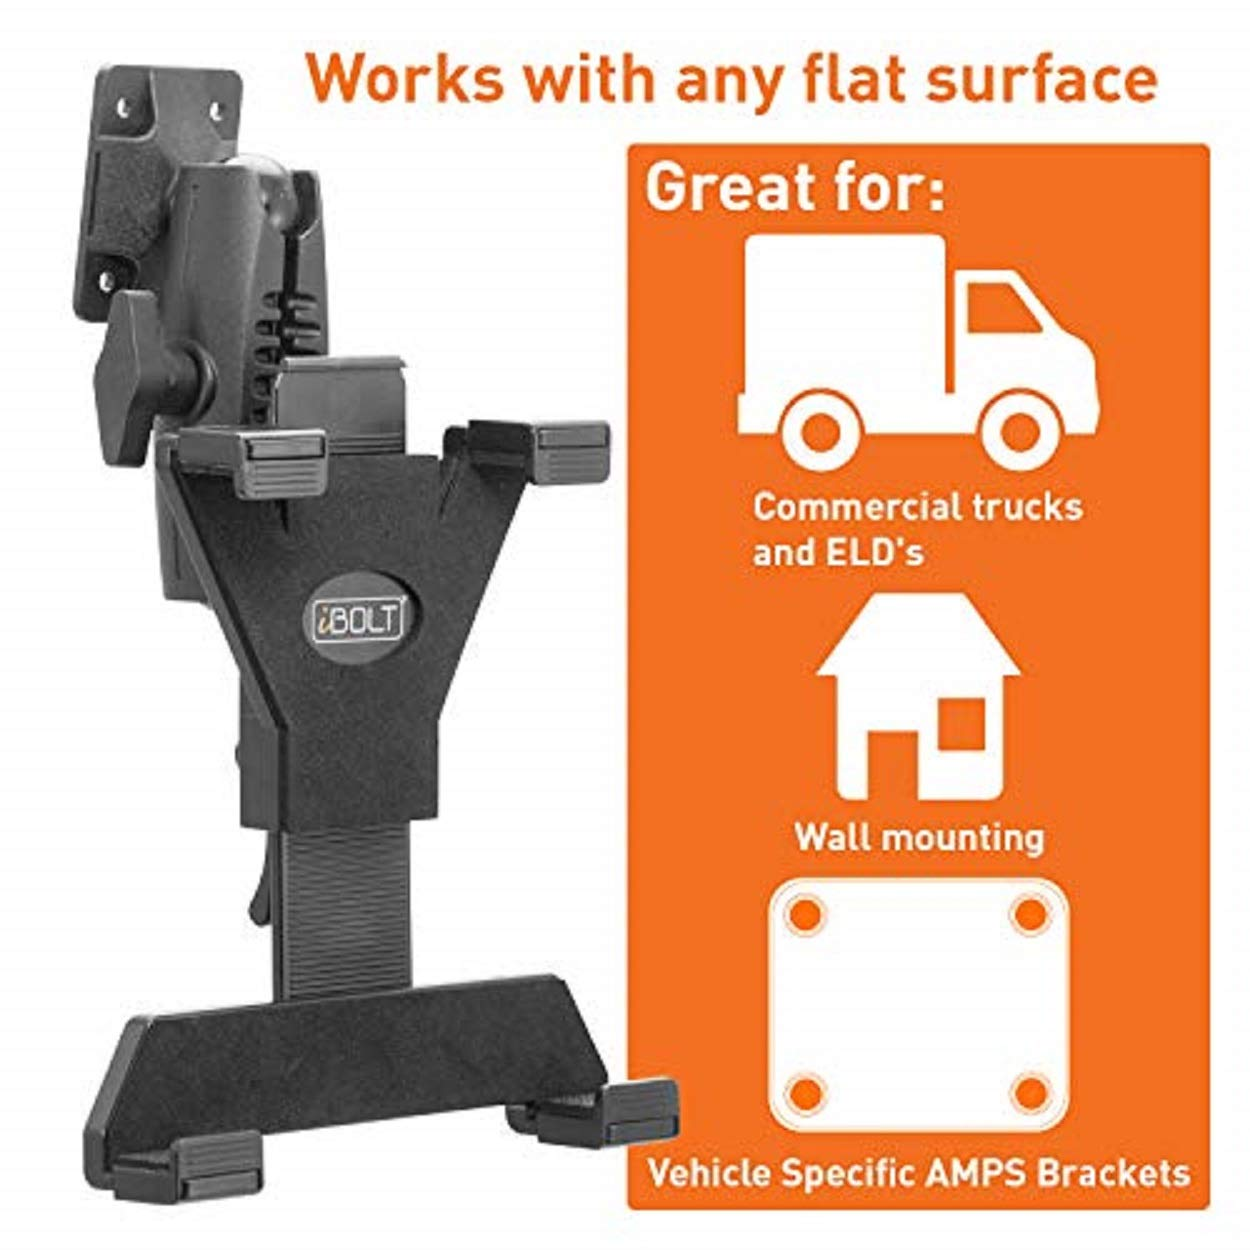 Heavy Duty Drill Base Mount for All 7-10 Tablets and Businesses Desks Countertops: Great for Commercial Vehicles Schools iBOLT TabDock AMPs iPad, Samsung Tab Homes for Cars Trucks